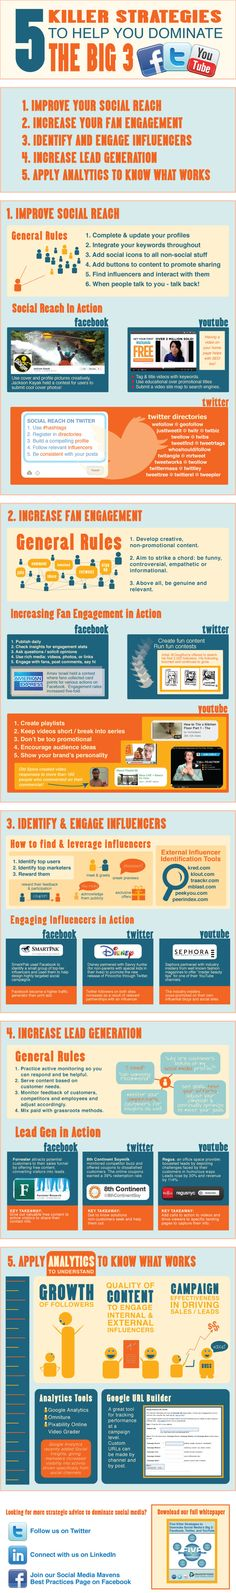 5 killer strategies to help you dominate FaceBook, Twitter y YouTube #infographic